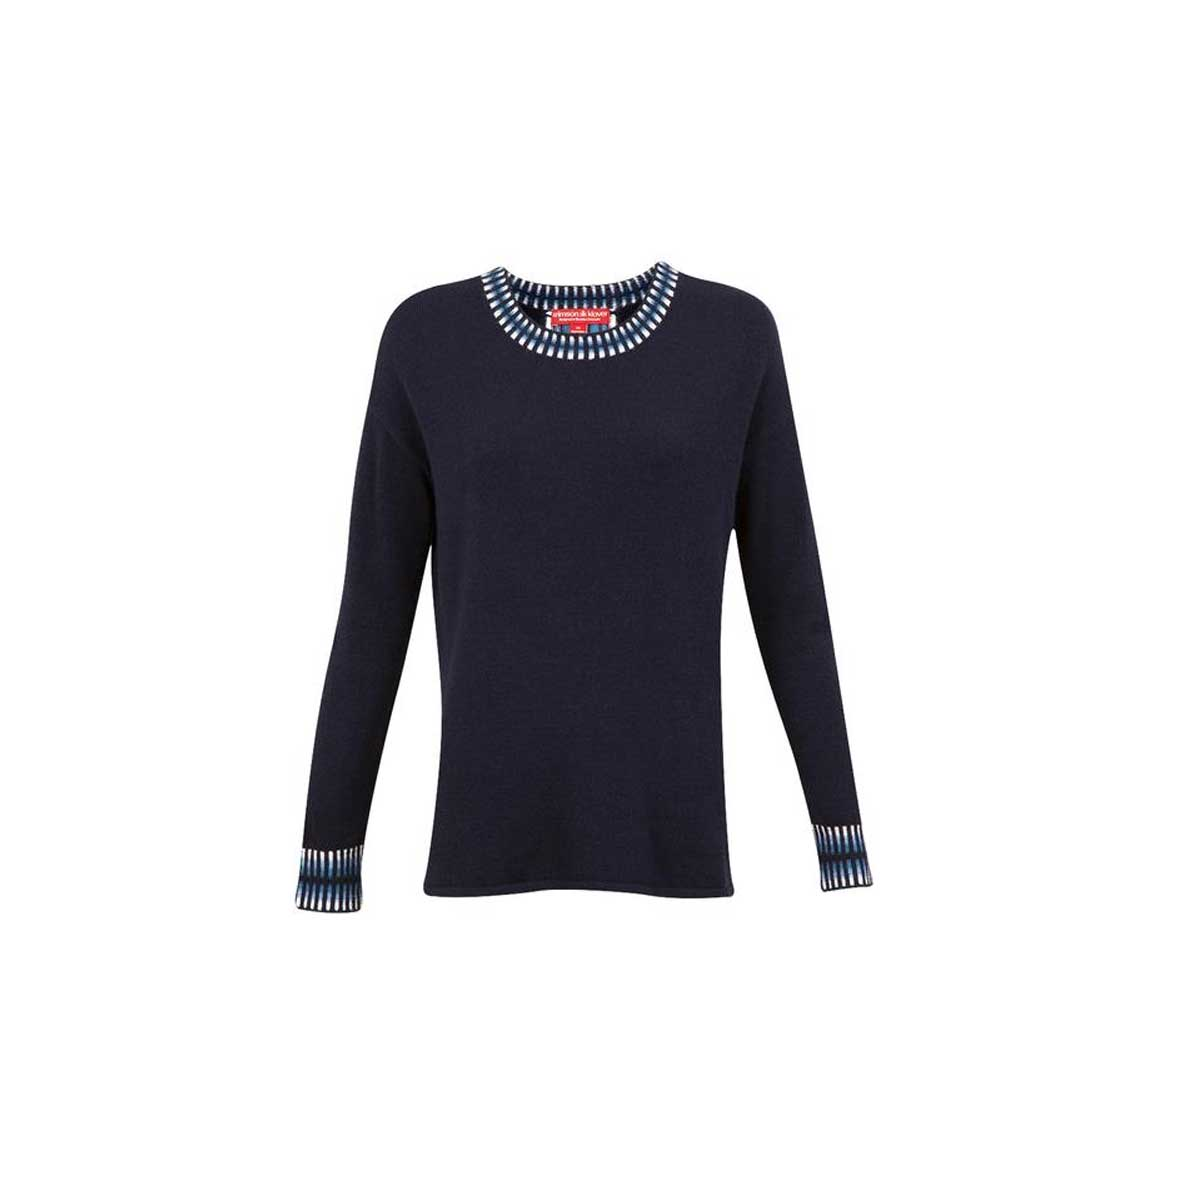 Krimson Klover Women's Wren Sweater in Indigo